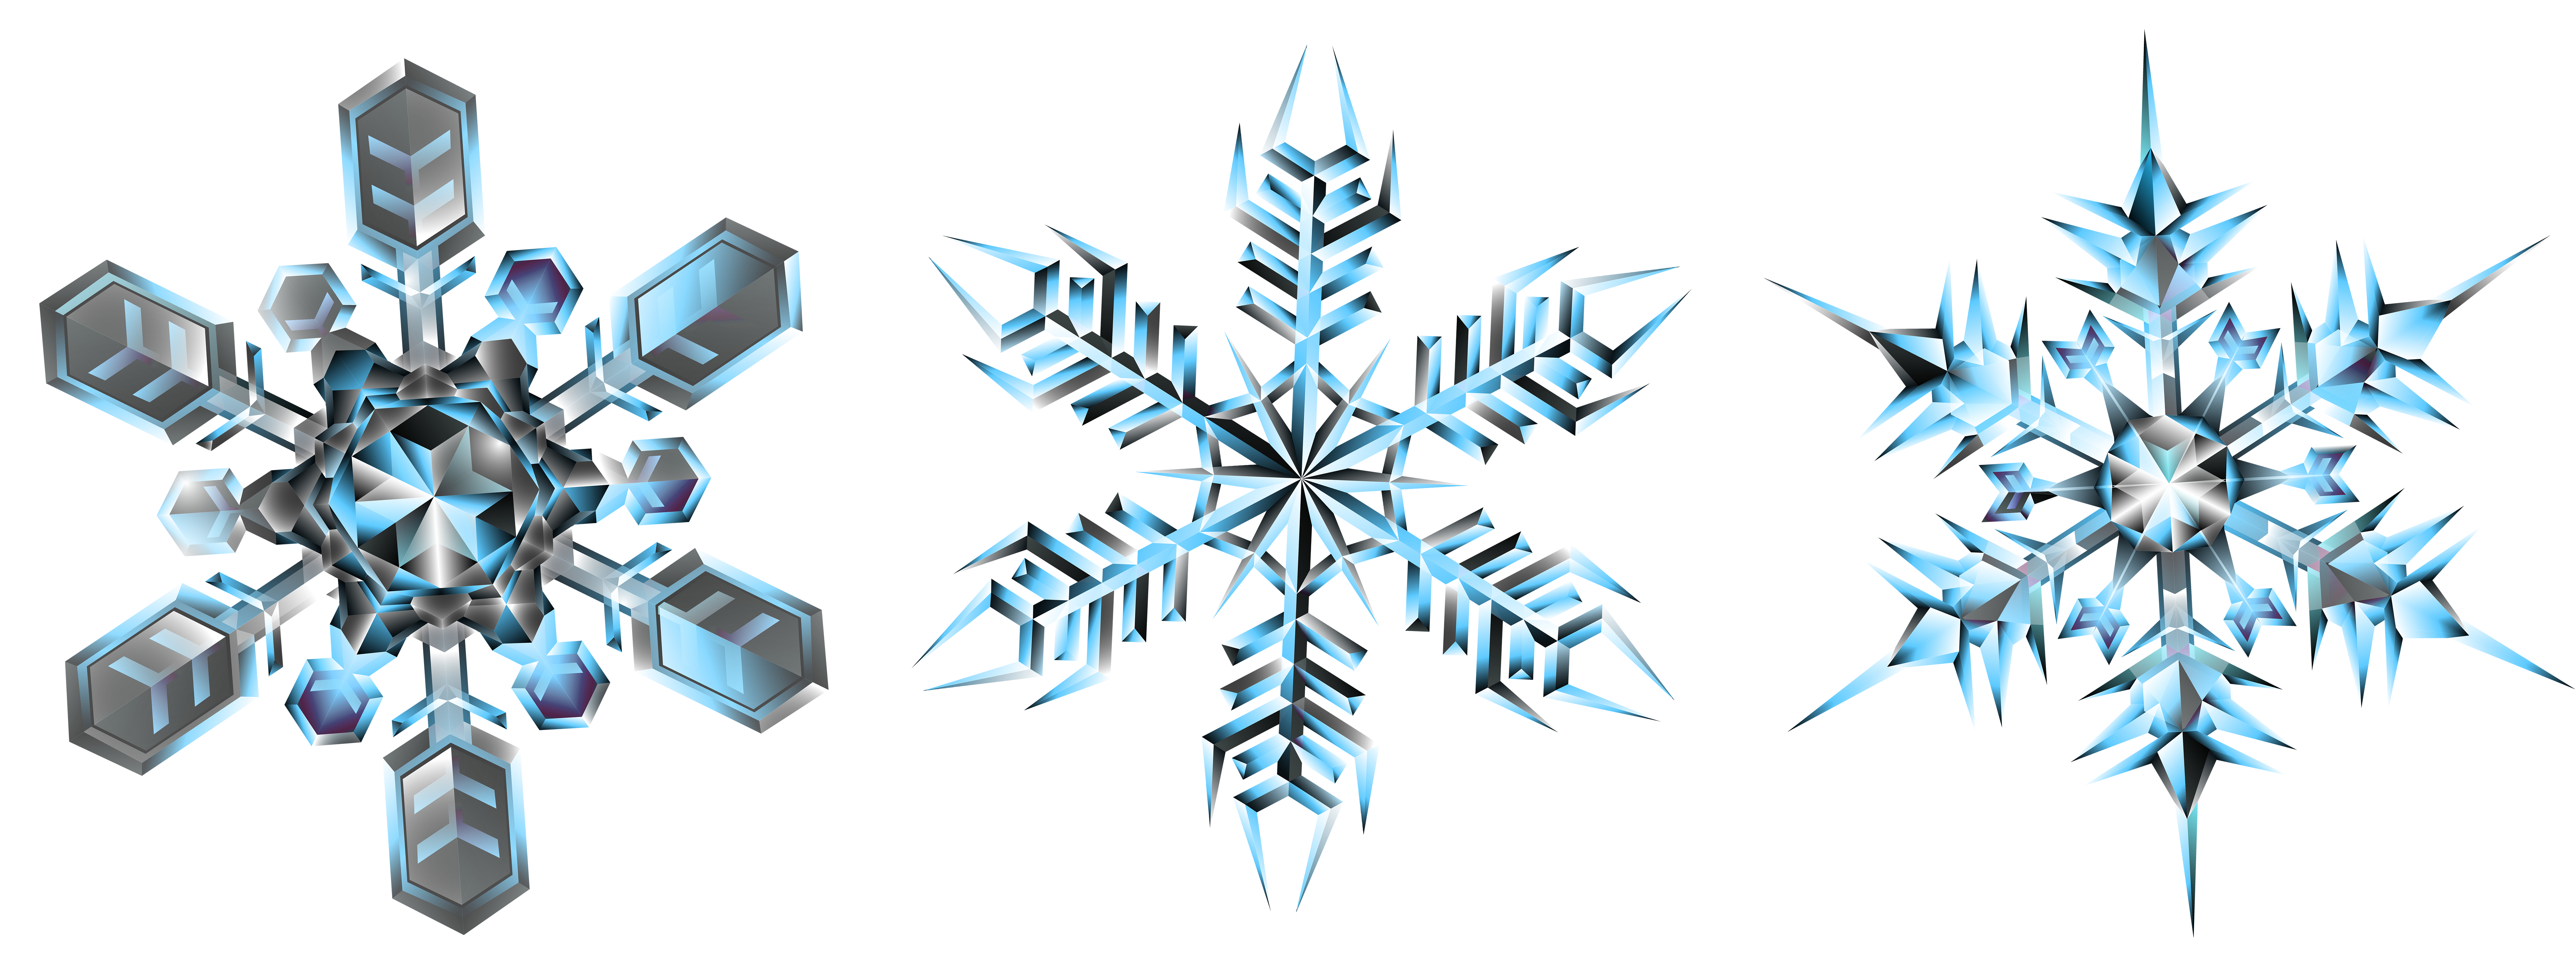 banner royalty free stock Snowflake border clipart transparent background. Crystal snowflakes png clip